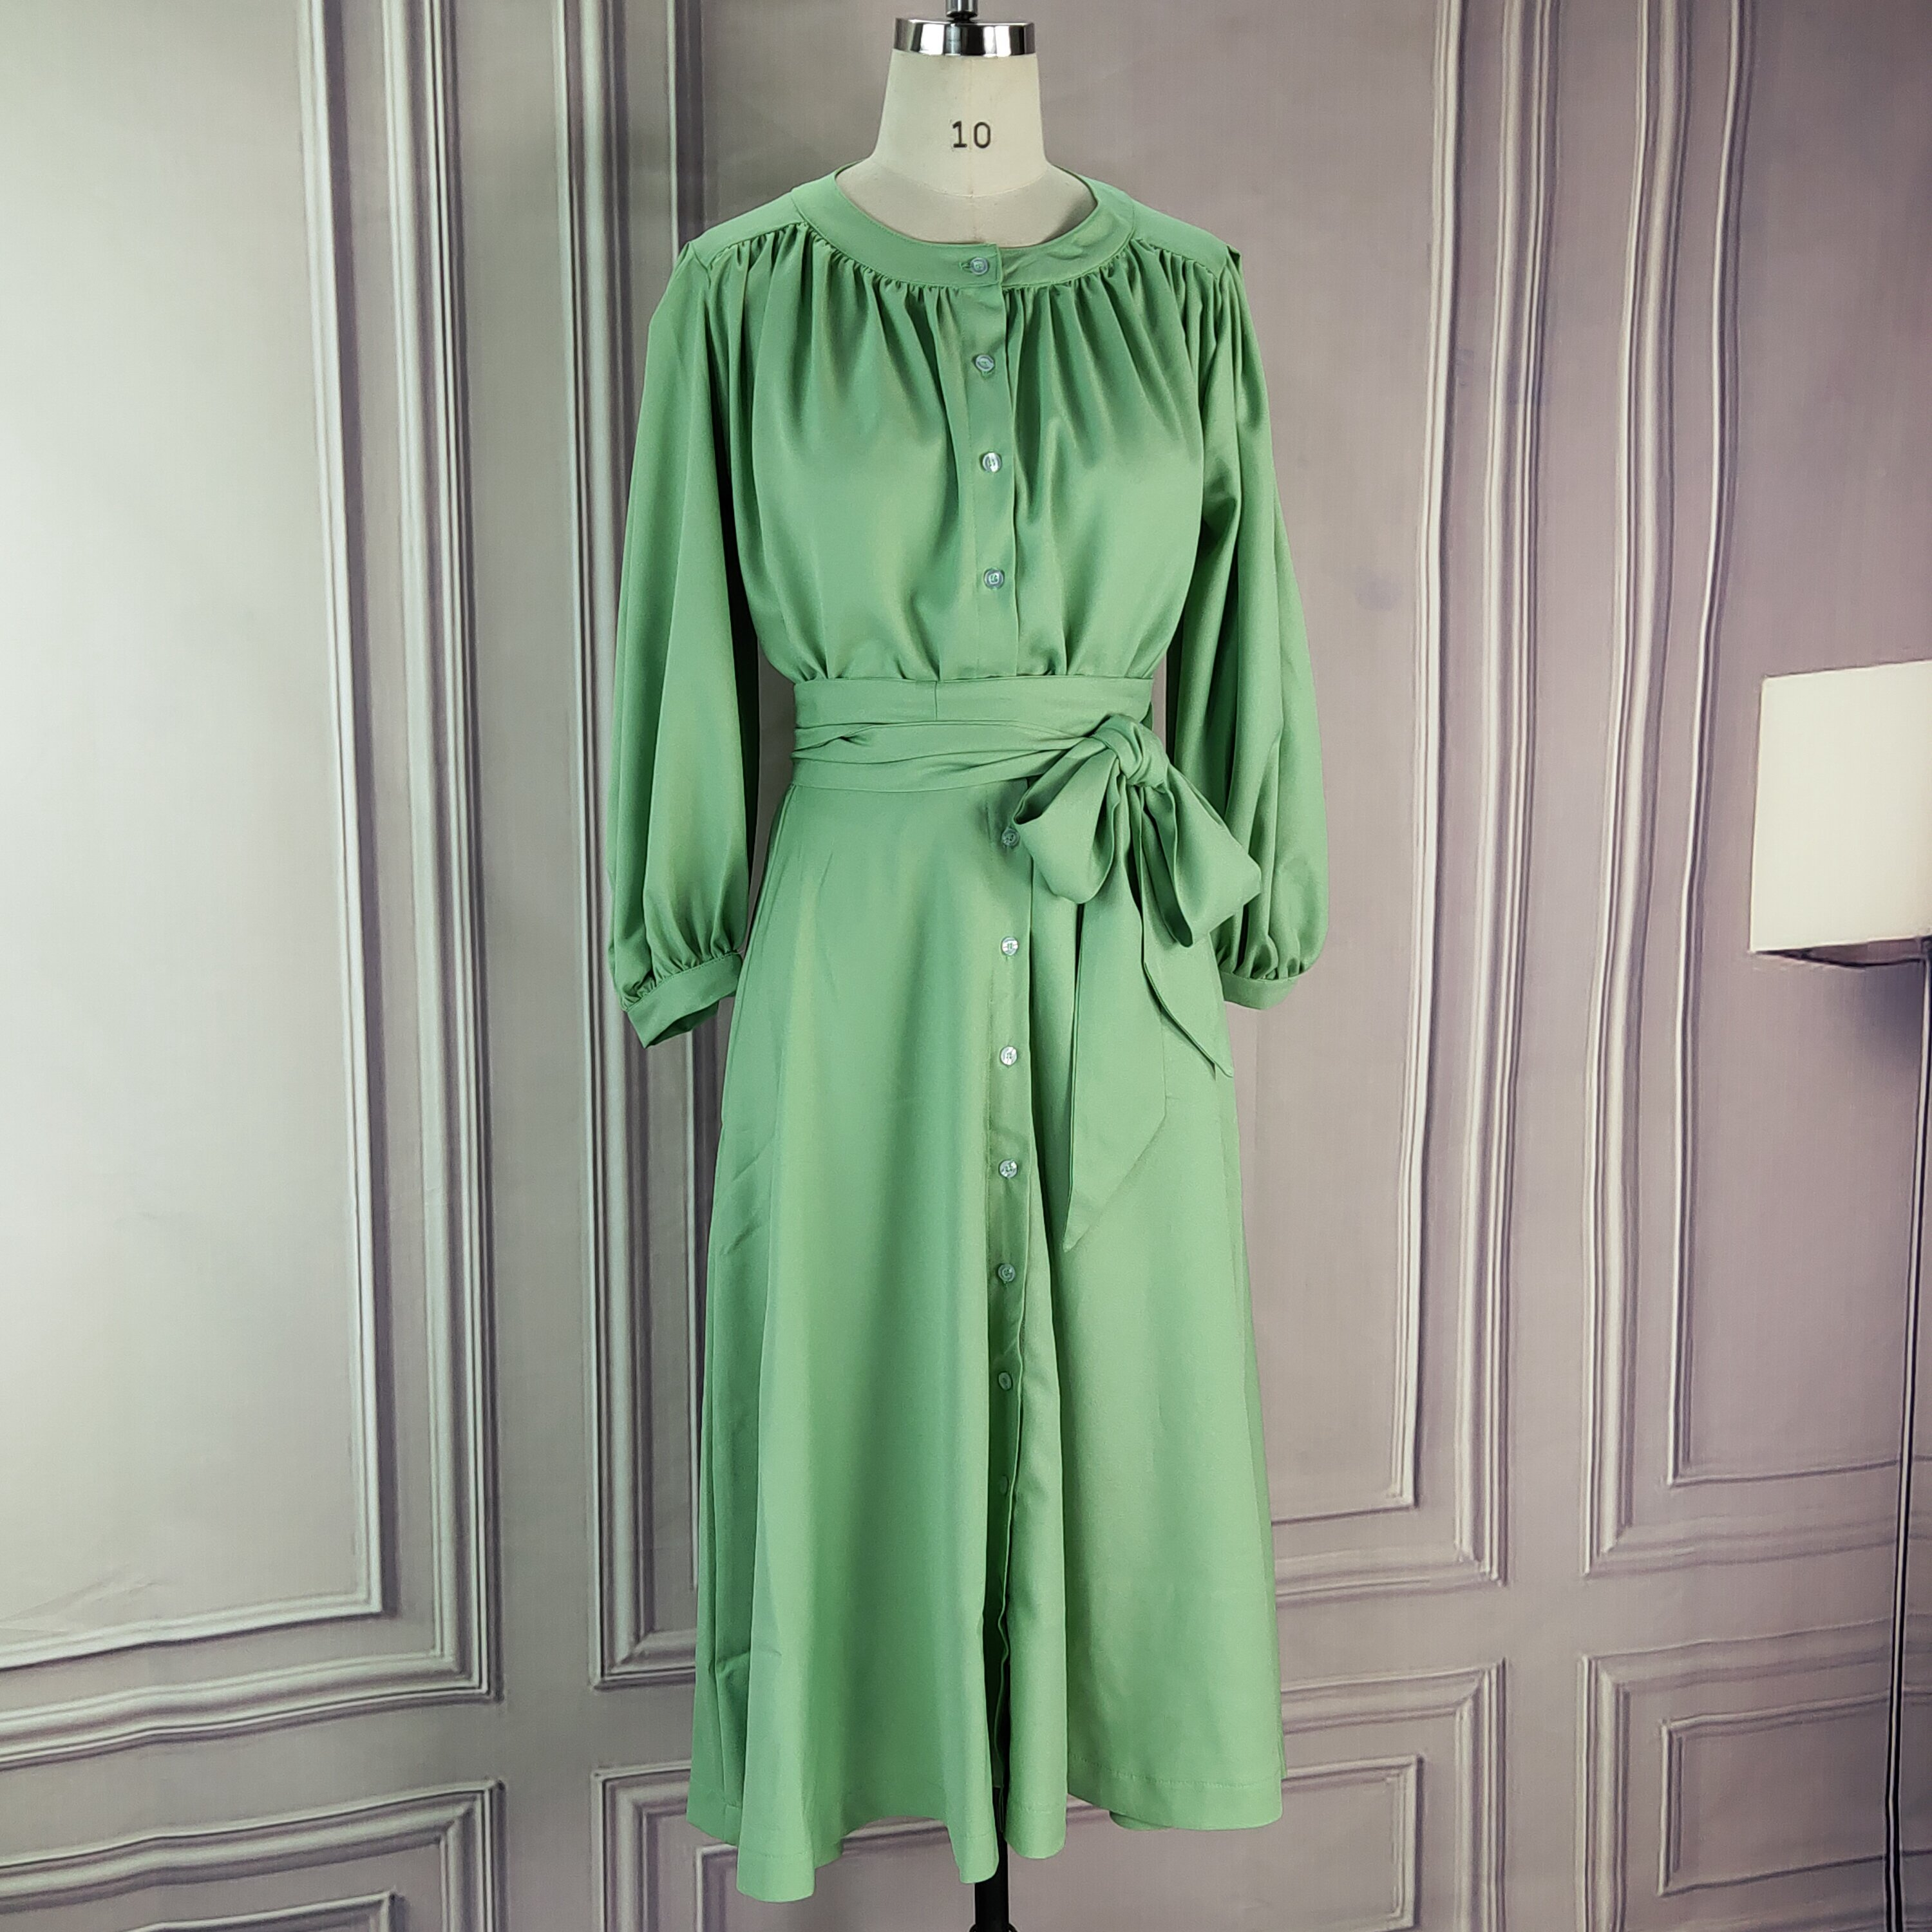 Two Piece Suits Women Tops Blouse Shirt With Sashes Pleated Skirt Midi Women Button Up Green New  Fashion Elegant Classy Clothes